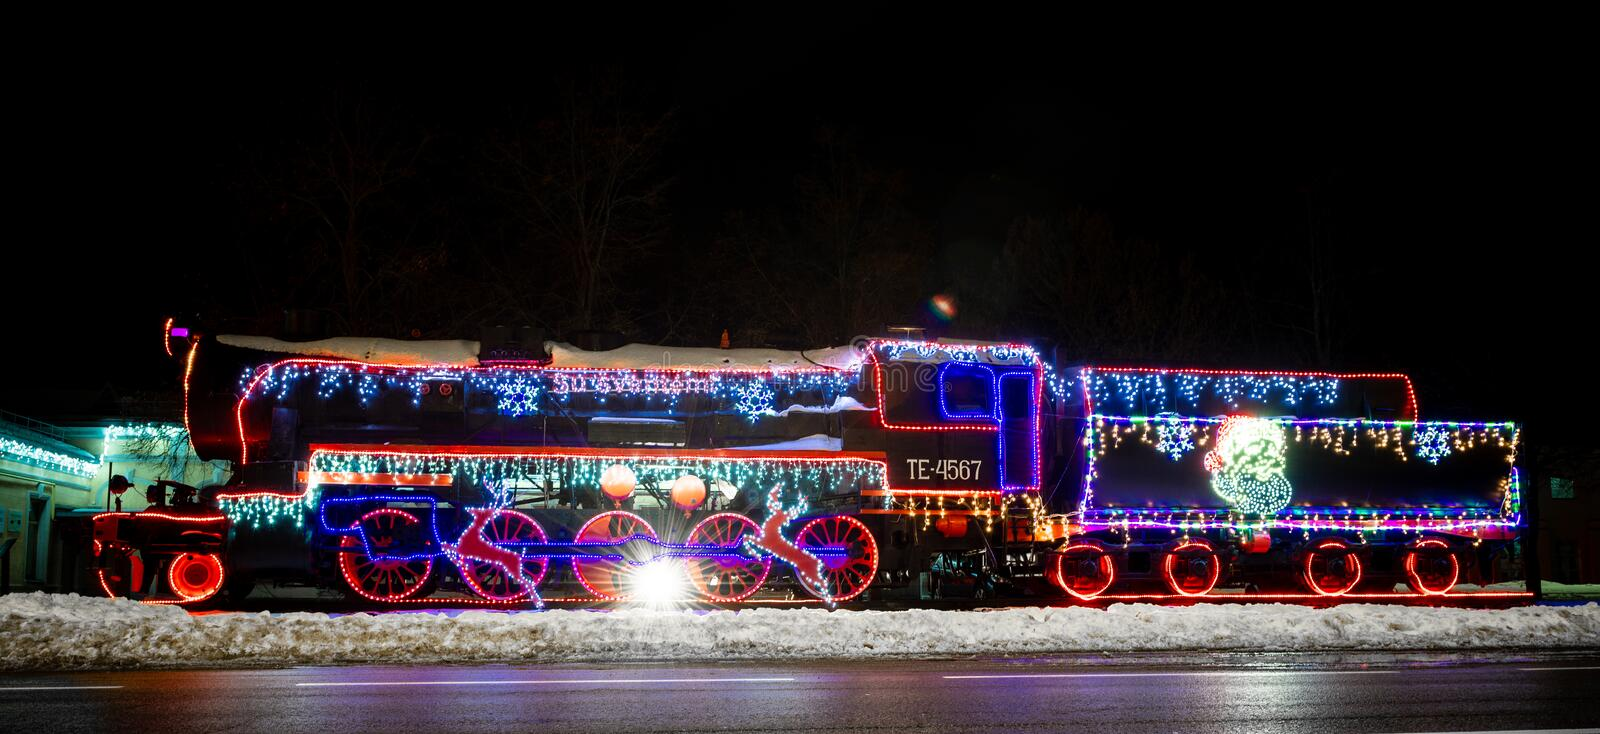 RADVILISKIS, LITHUANIA - DECEMBER 26, 2018: Colorful Old Train Locomotive with Christmas Lights on it. Colorful Old Train Locomotive with Christmas Lights on it stock photo